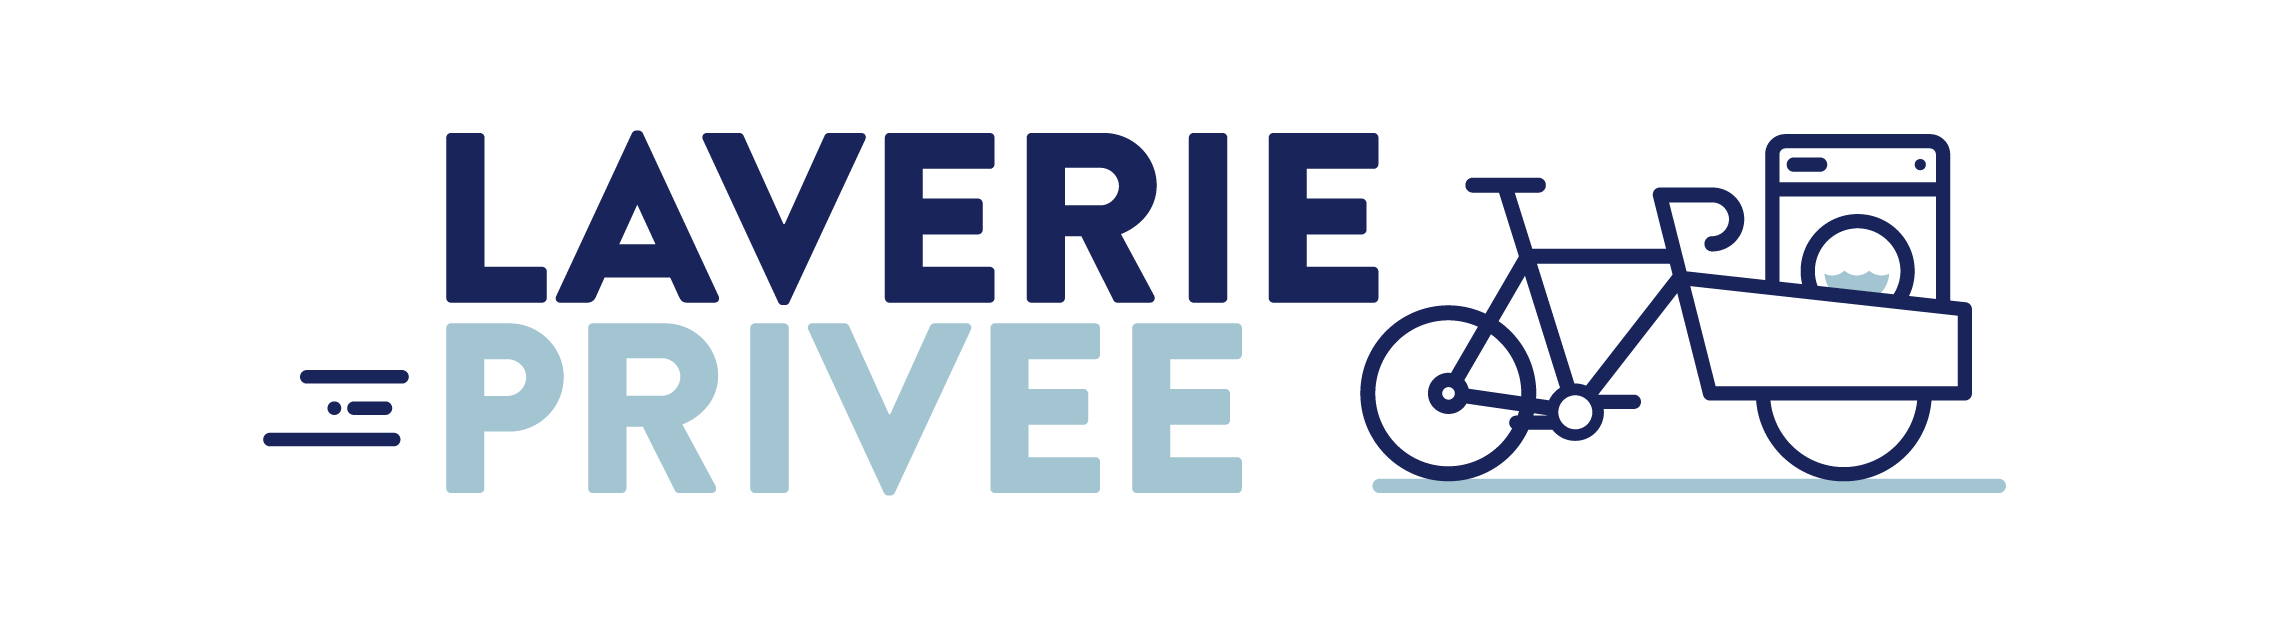 logo laverie privee